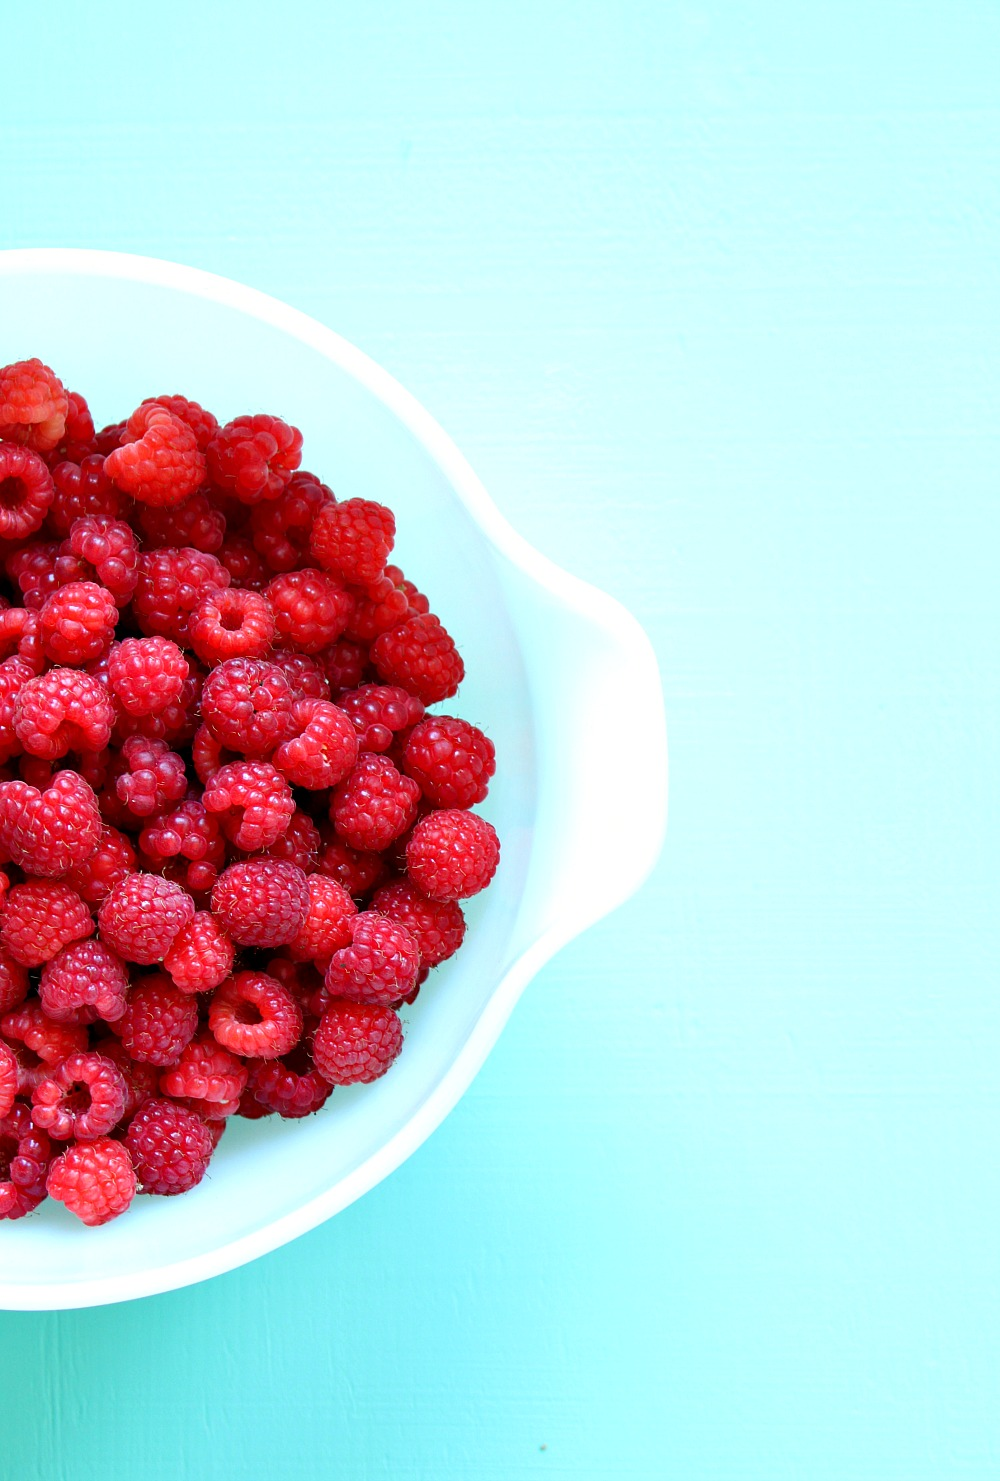 Bowl of Raspberries